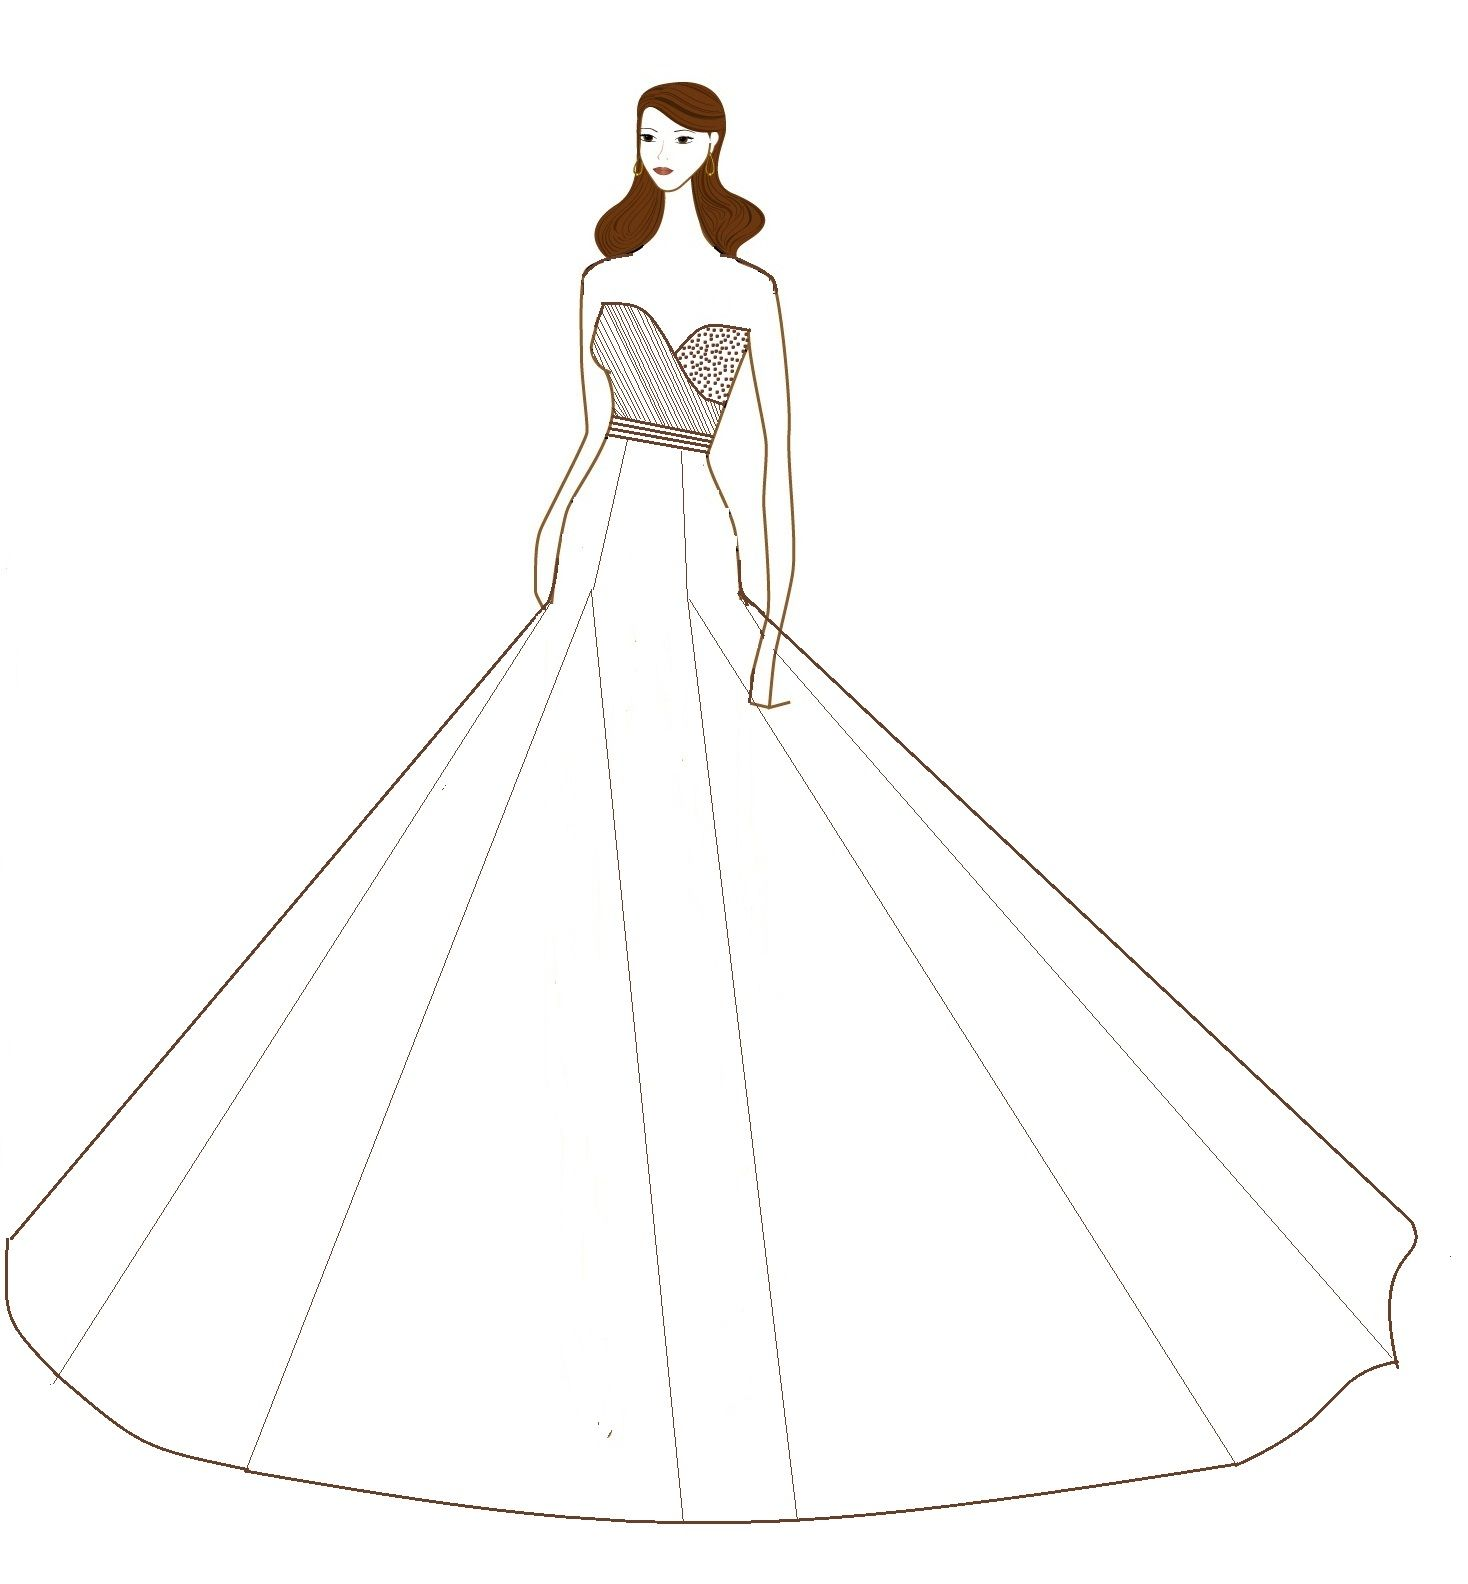 Strapless ChiffonRuched Overlapping Bodice And Flared Skirt Wedding Dress Sketch